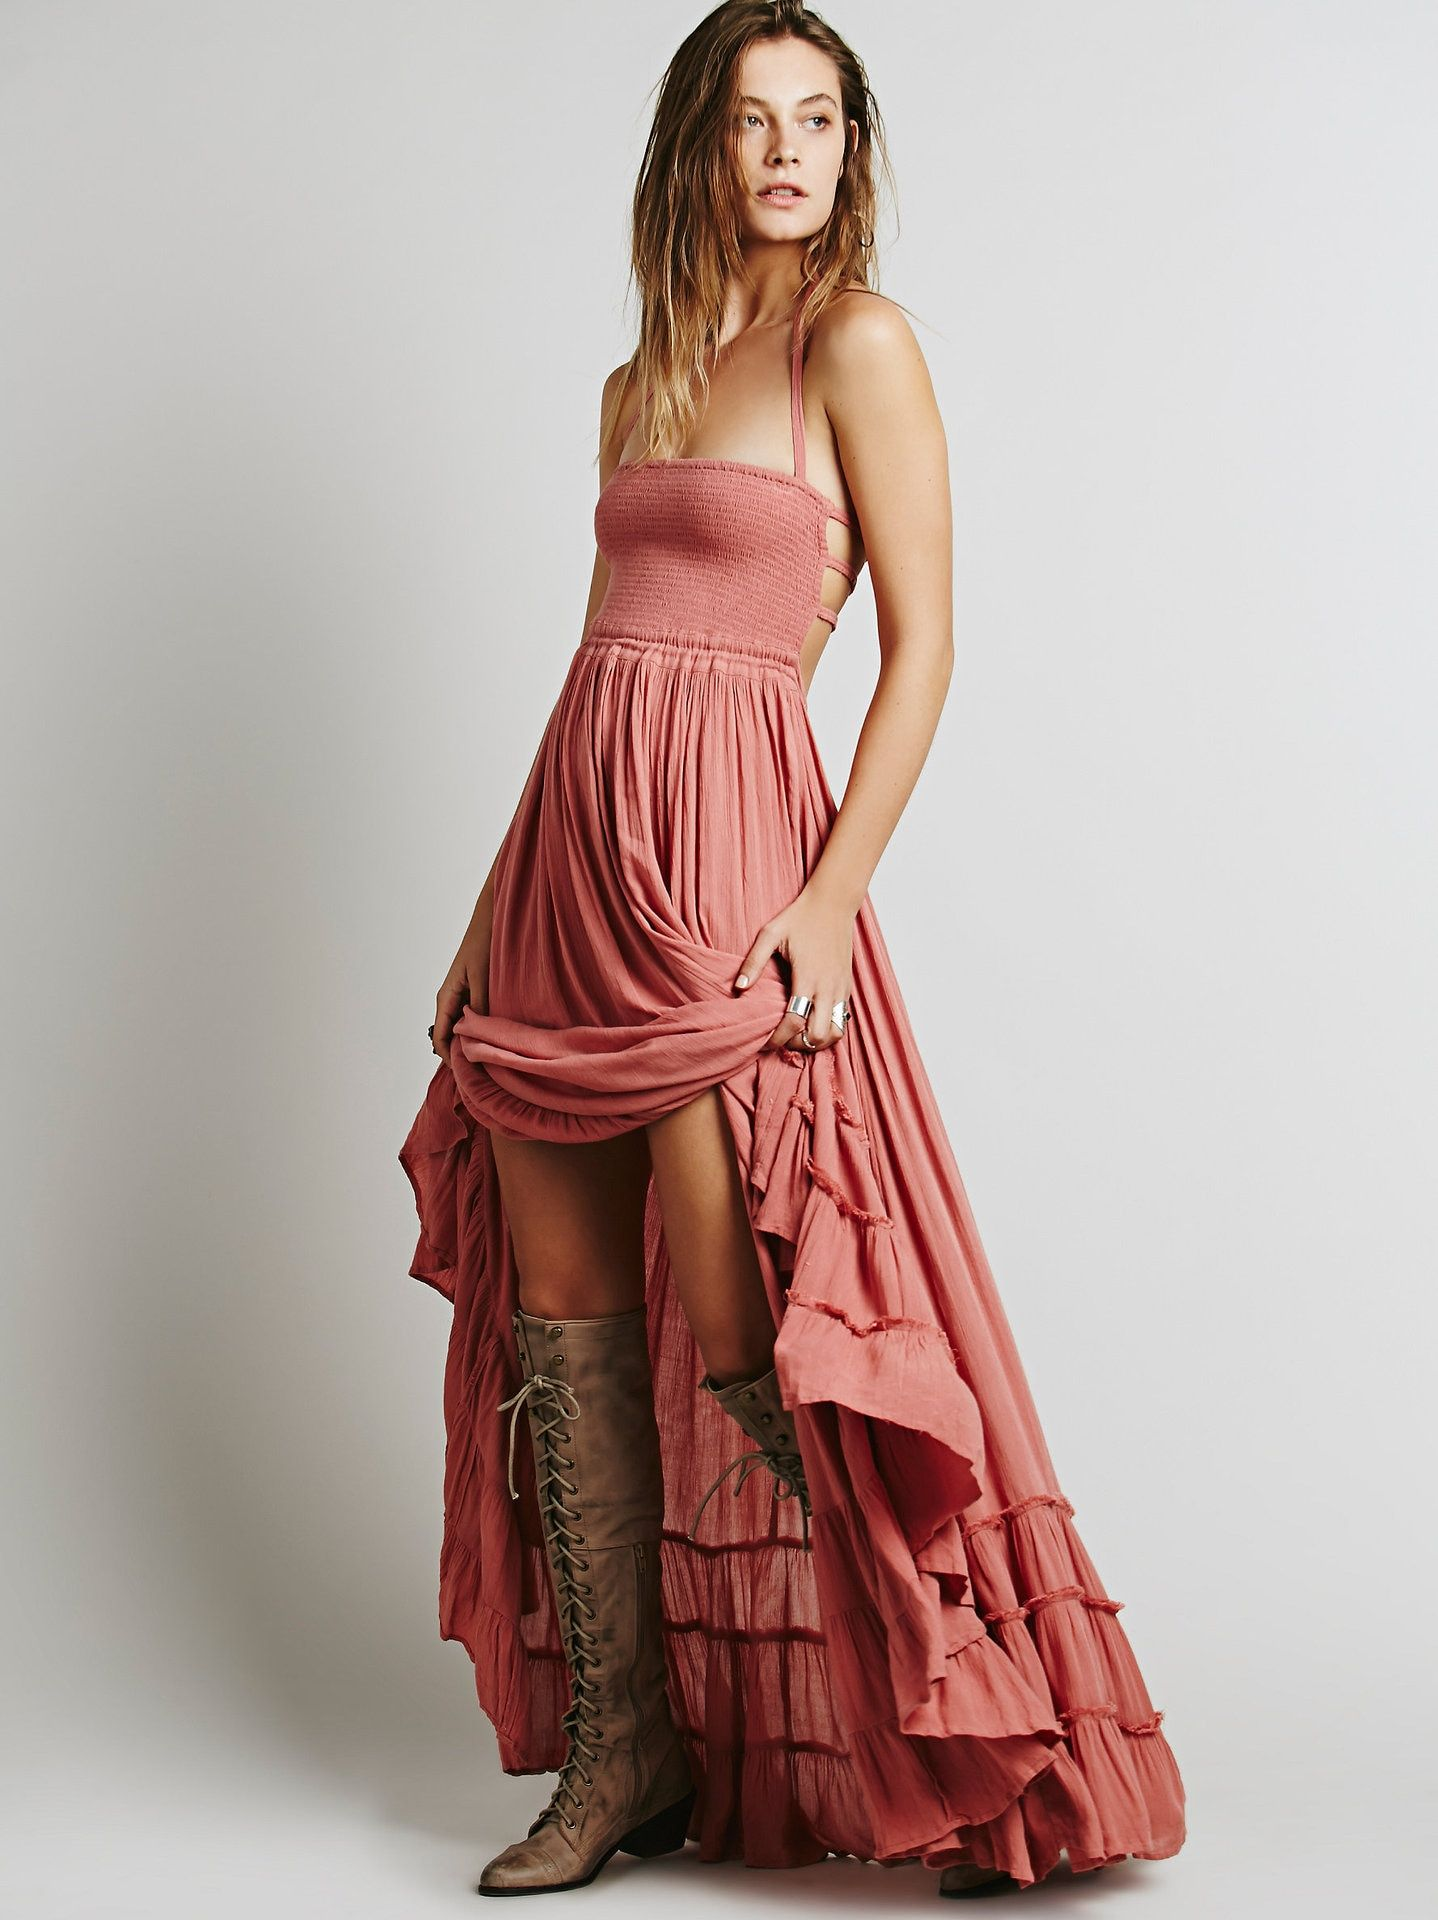 2018 Beach dress sexy dresses boho bohemian people Holiday summer long backless cotton women party hippie chic vestidos <font><b>mujer</b></font>